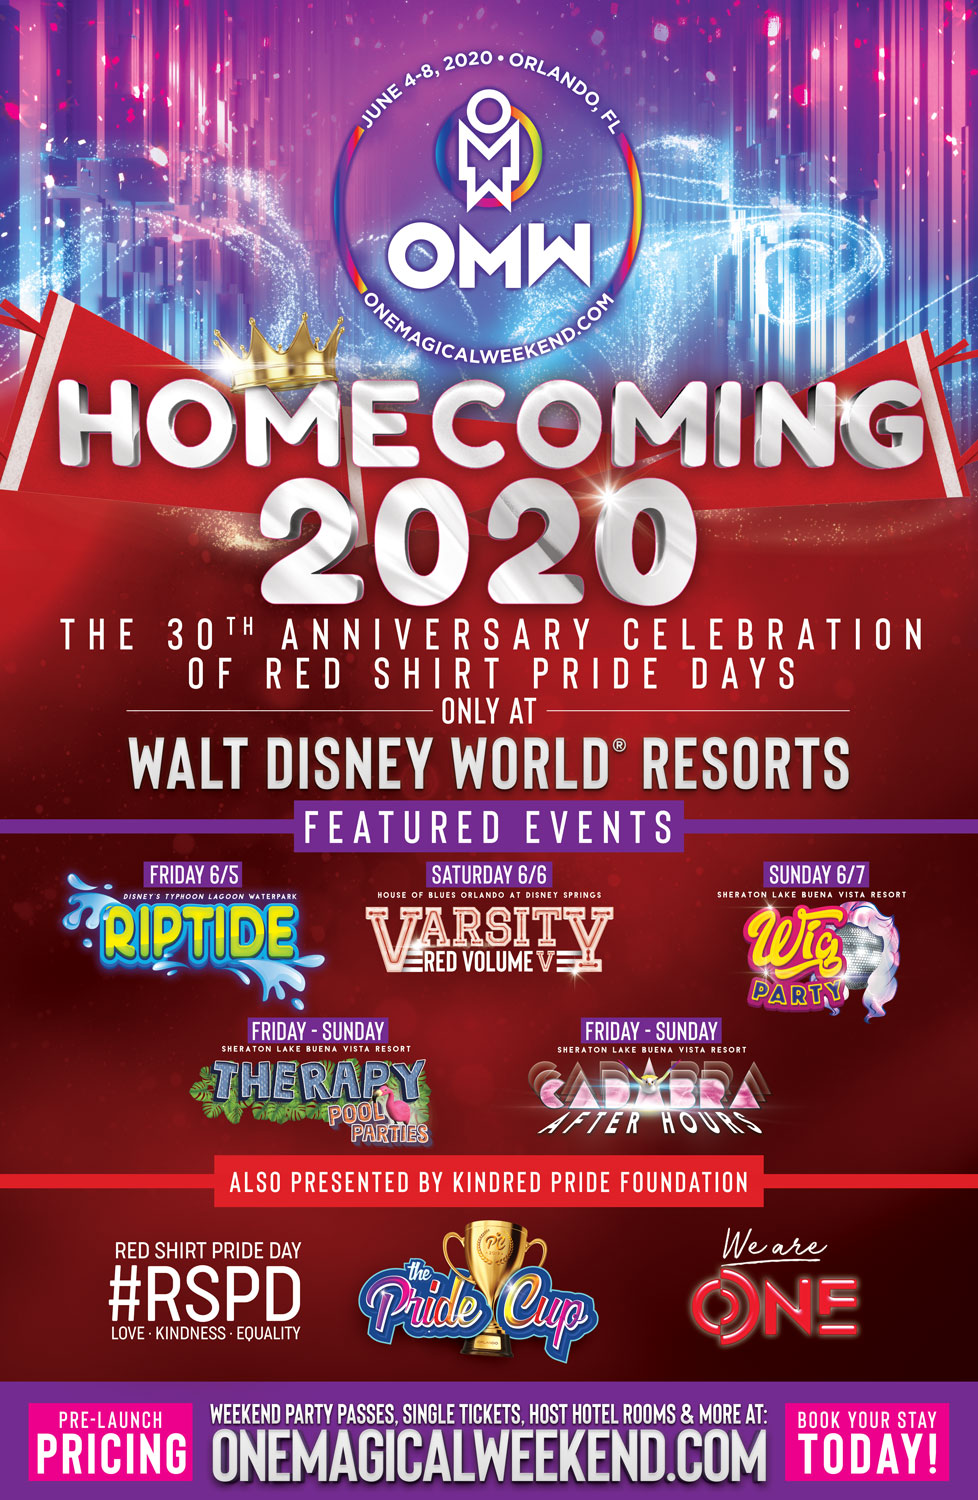 Events At Disney World 2020.One Magical Weekend 2020 At Walt Disney World Resorts